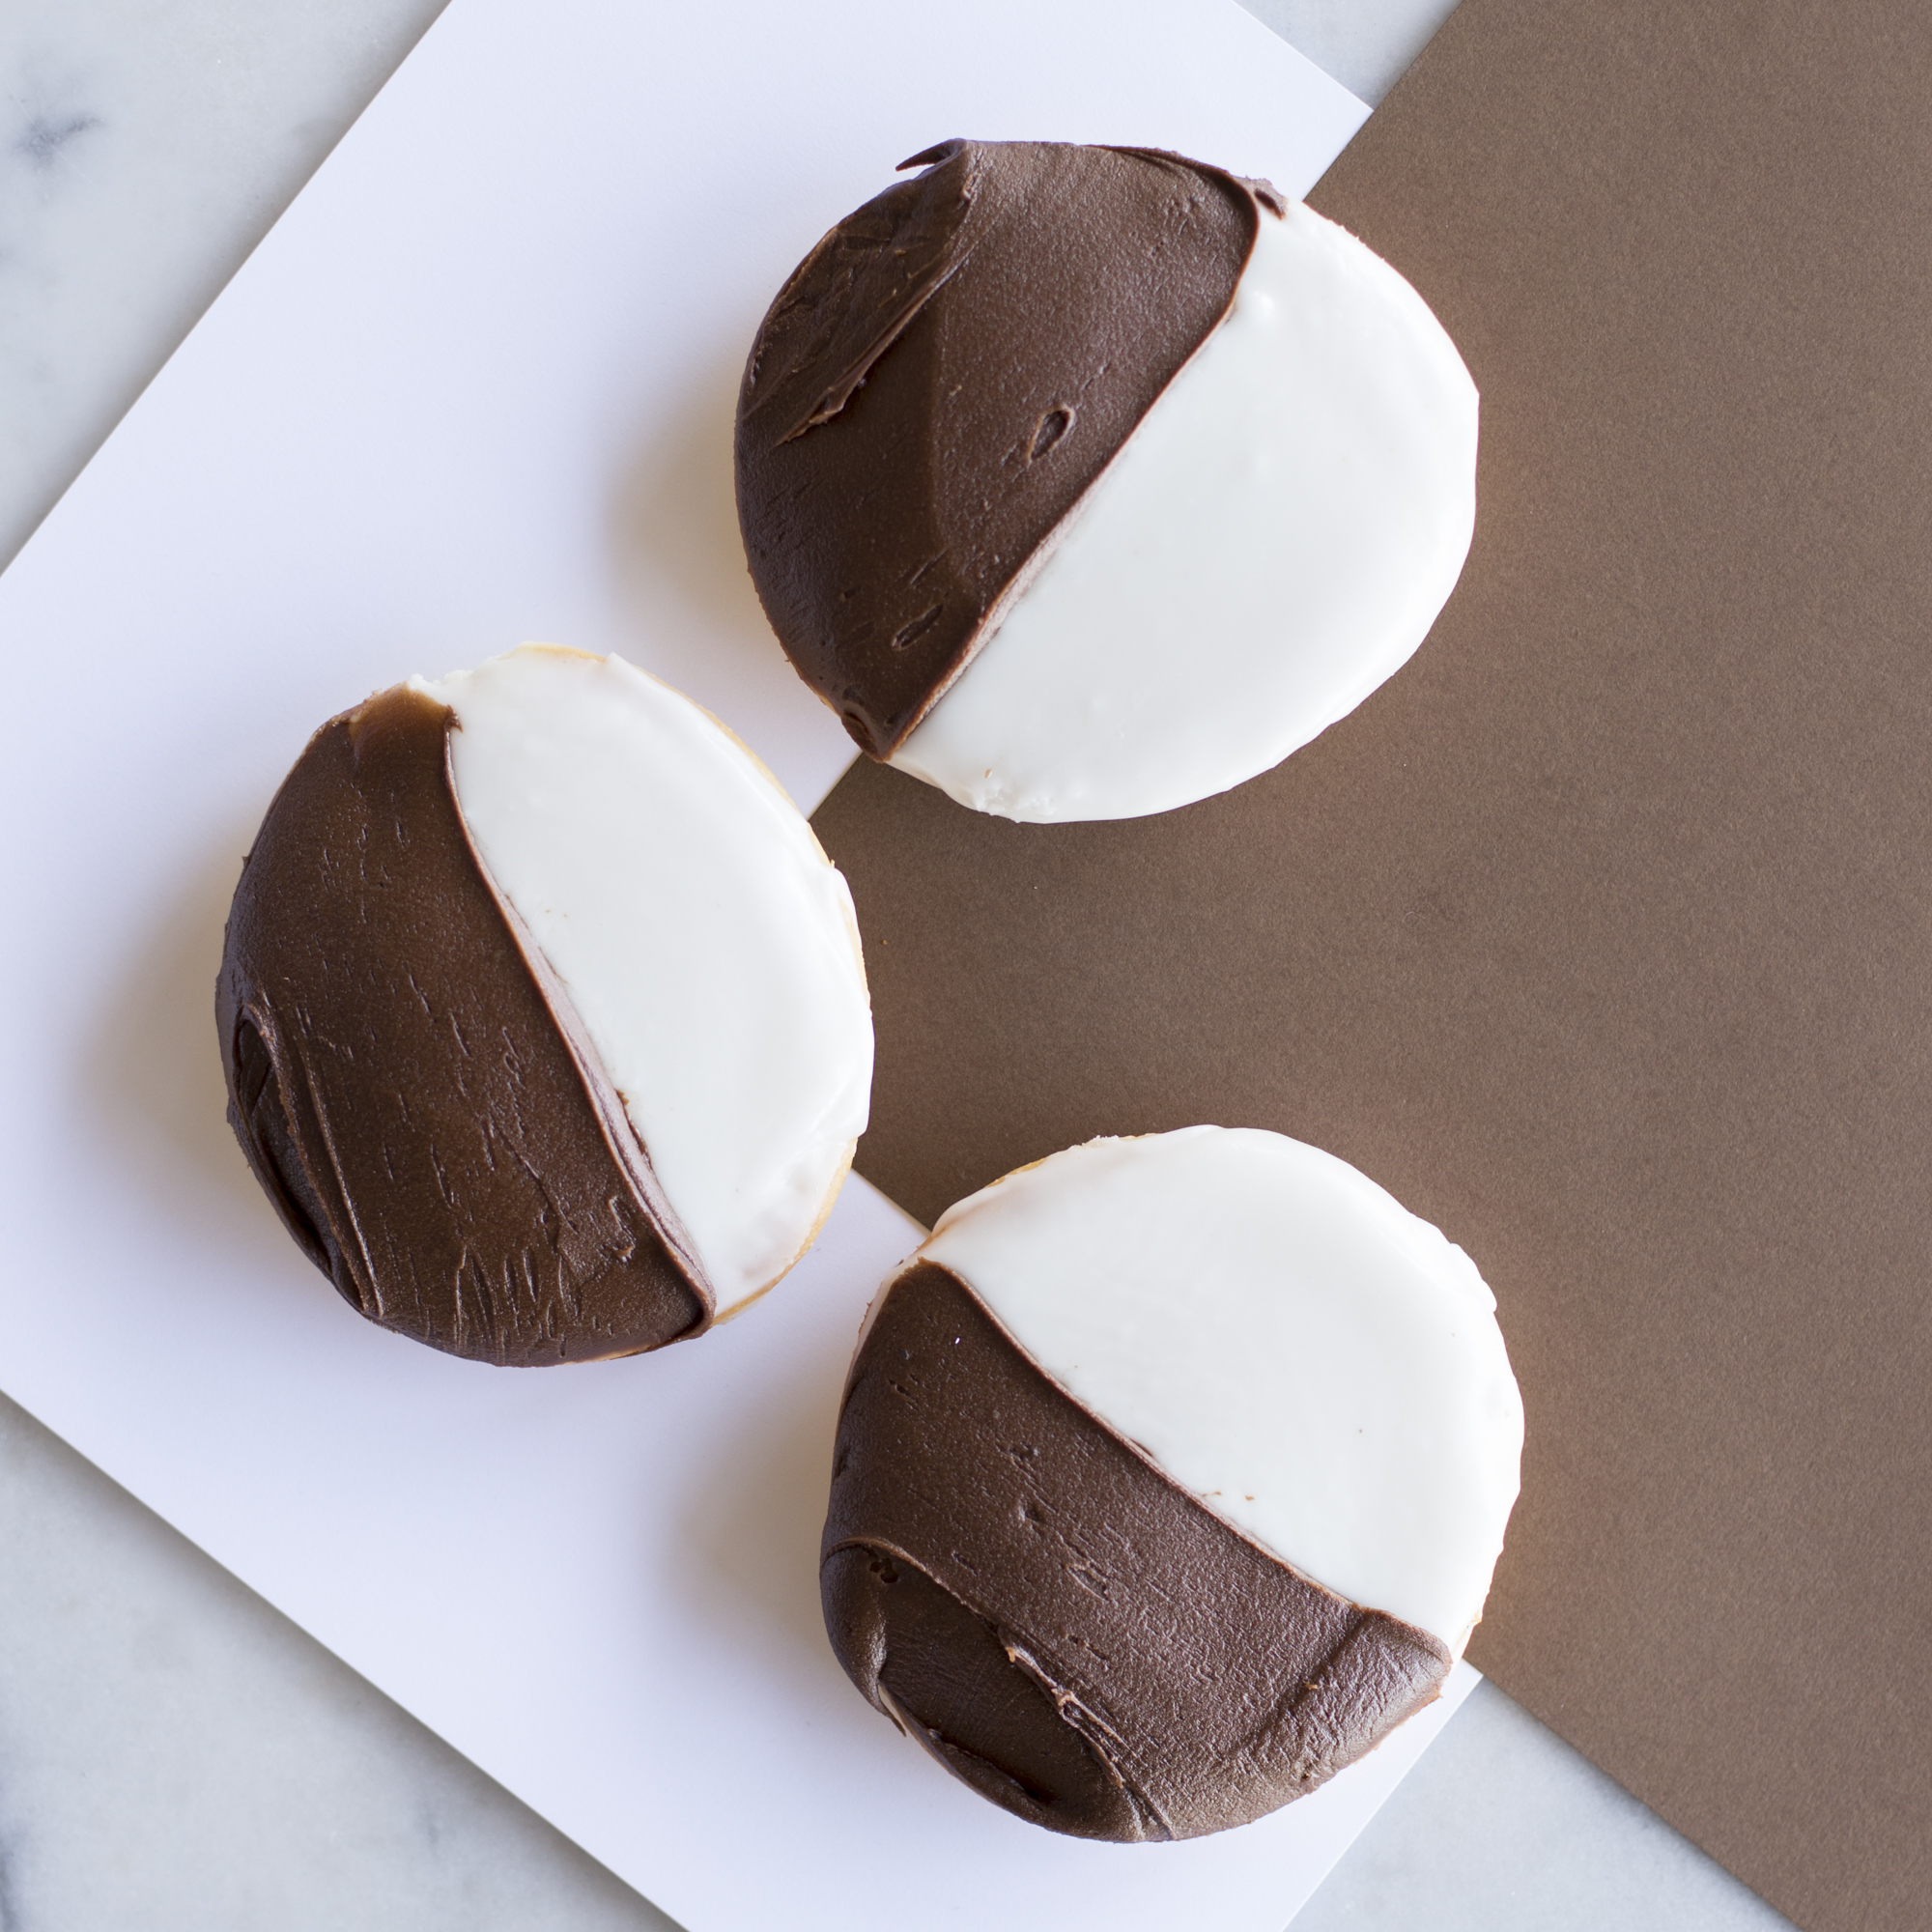 Katella Bakery 3 famous black and white cookies